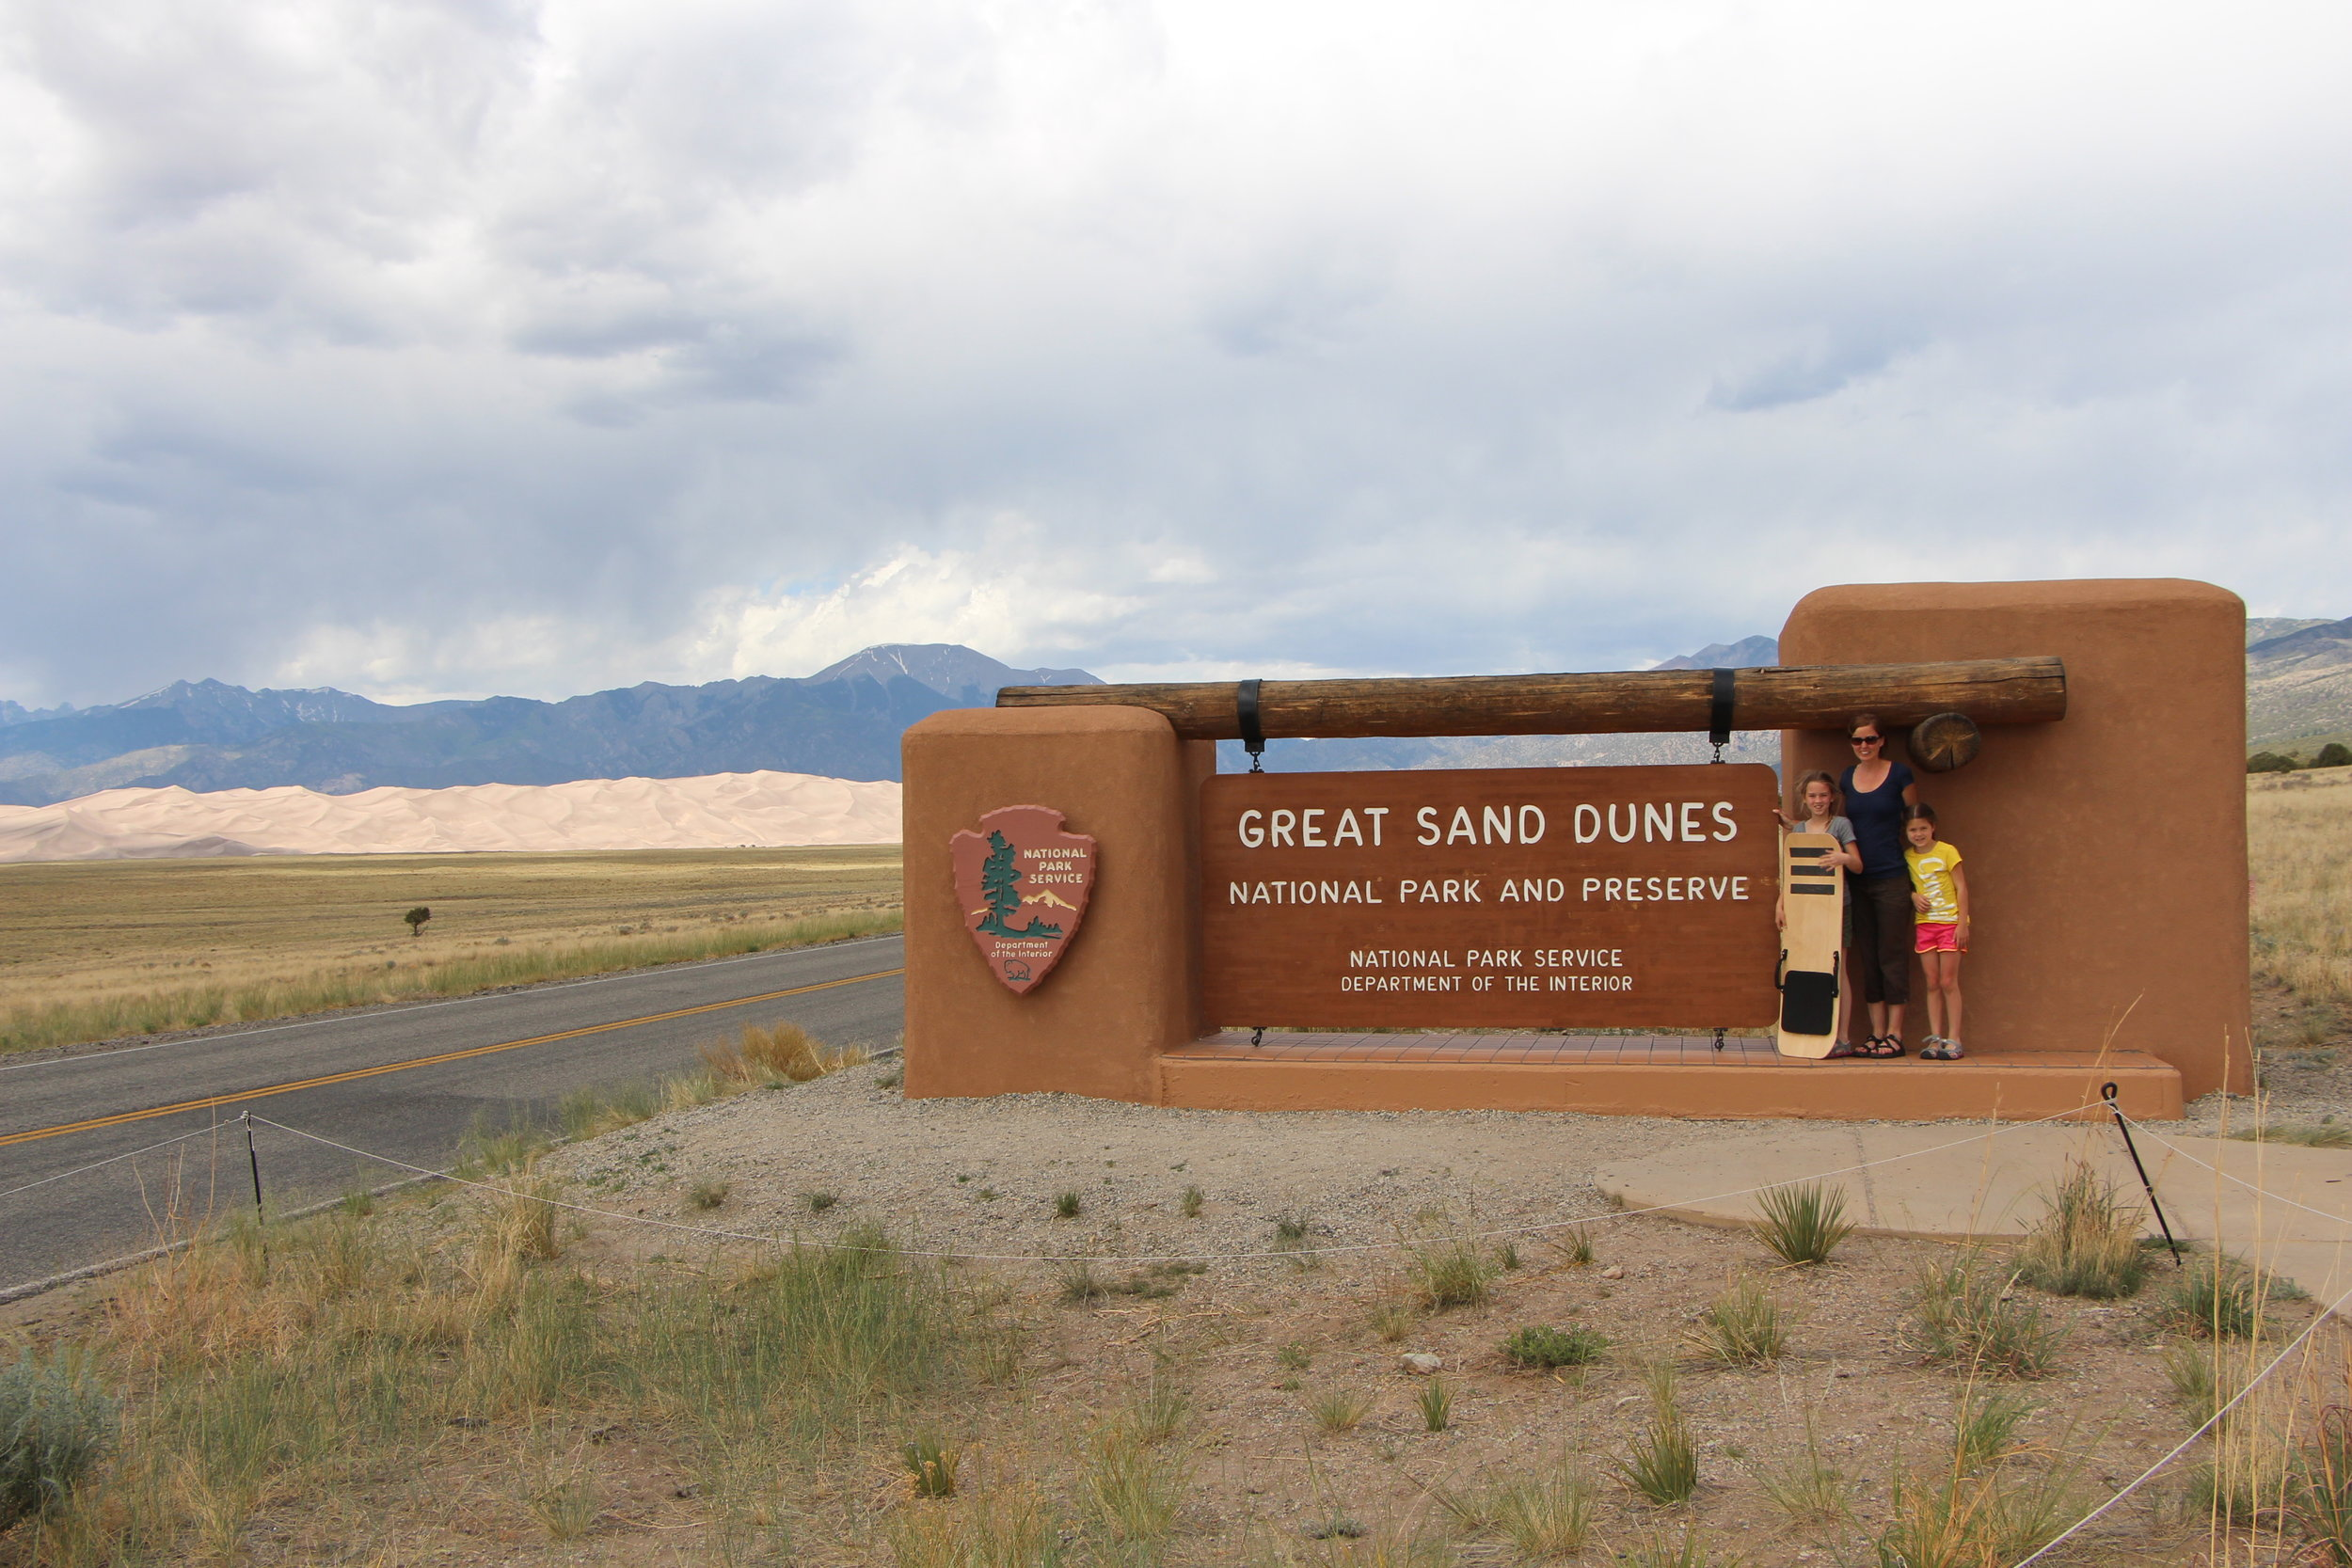 Great Sand Dunes Entry